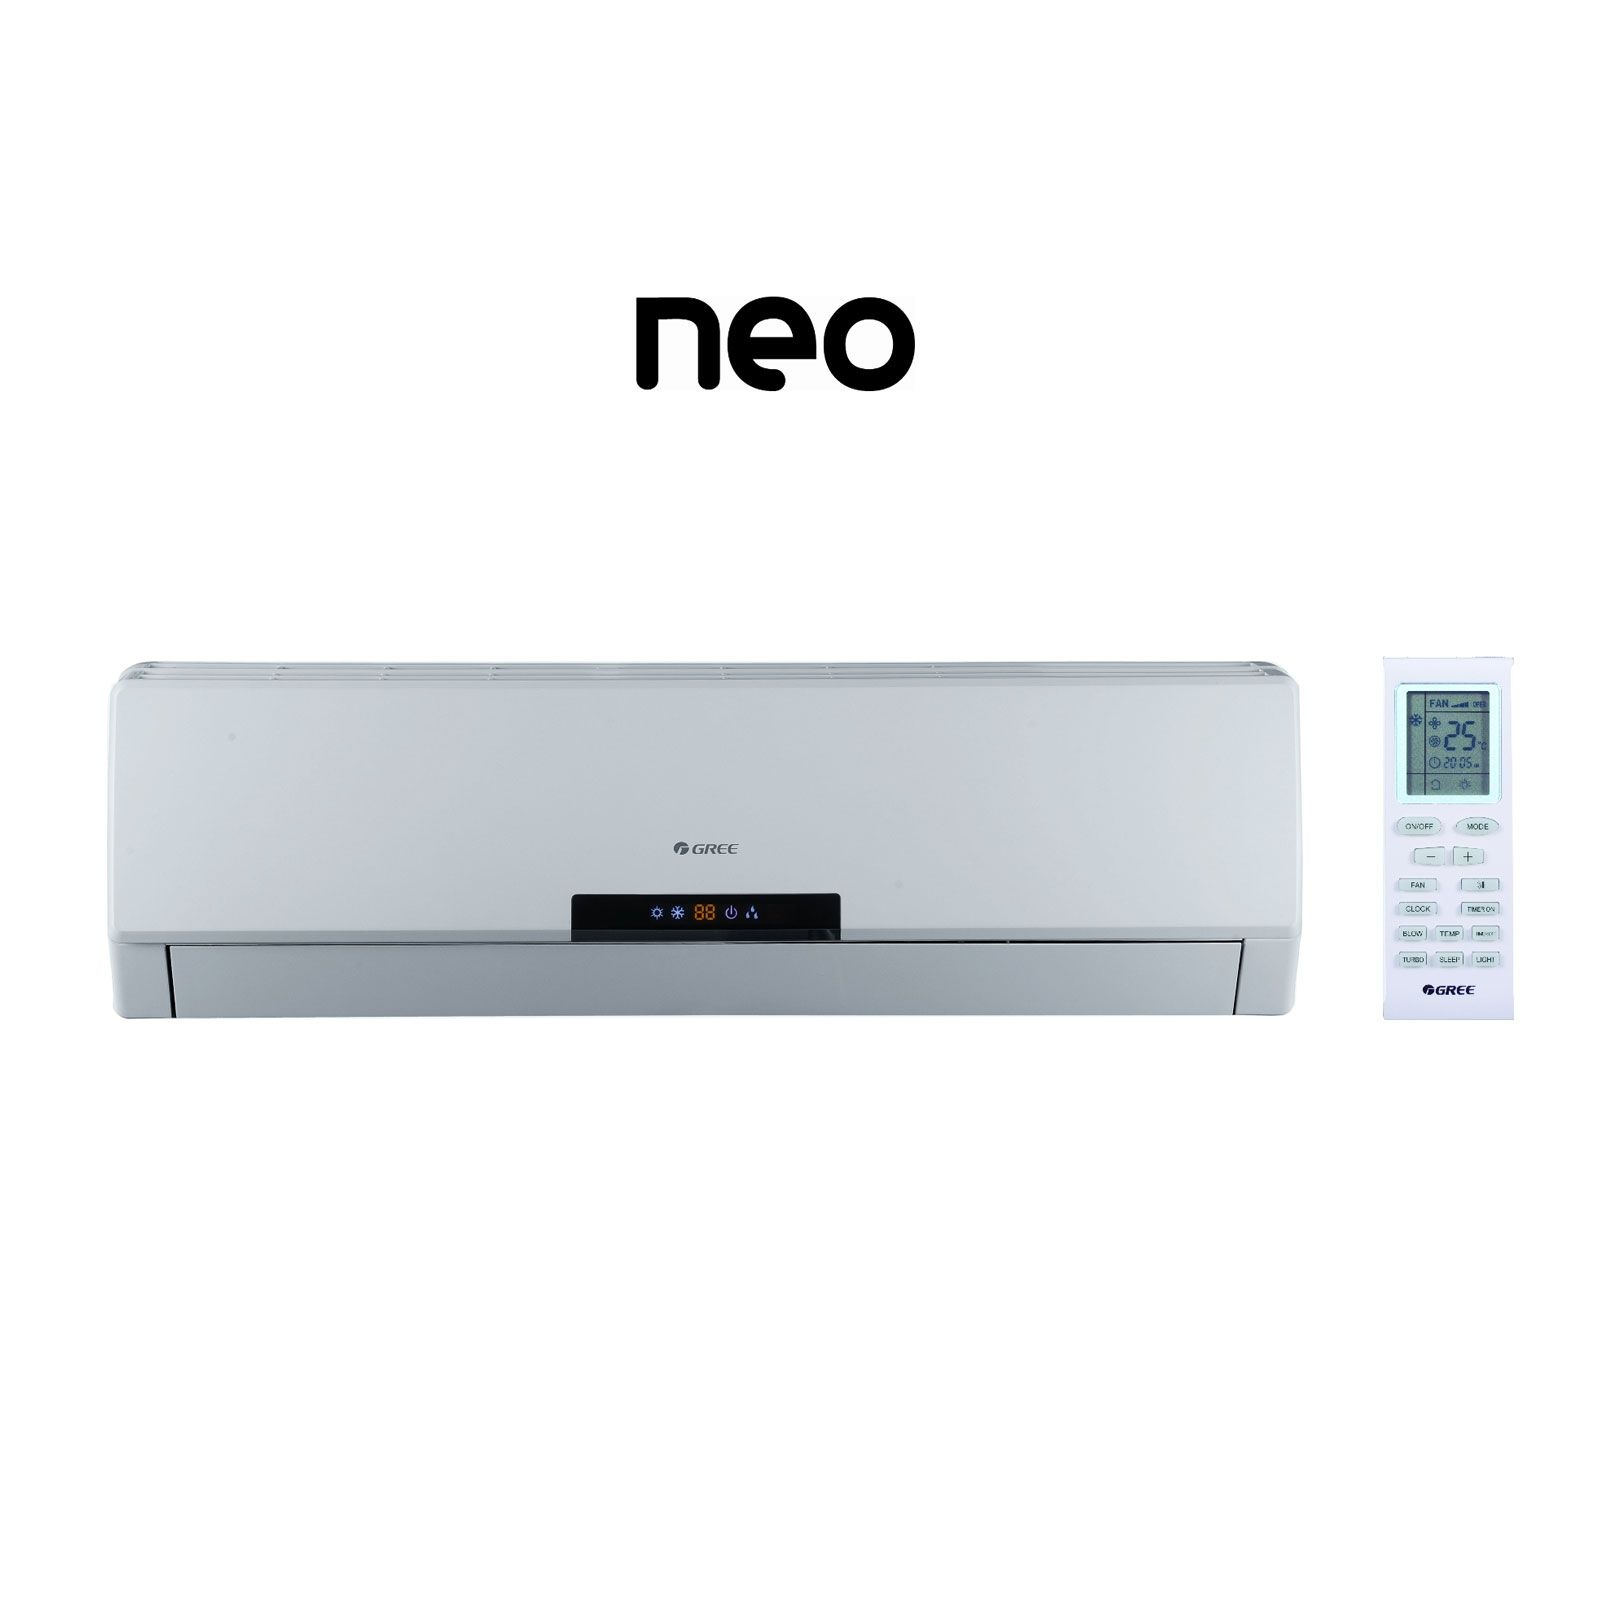 Gree Neo30hp230v1ah 2 1 Ton 16 Seer Neo Ductless Mini Split Air Con Wiring Diagram Indoor Unit 208 230 V View Full Size In New Tab